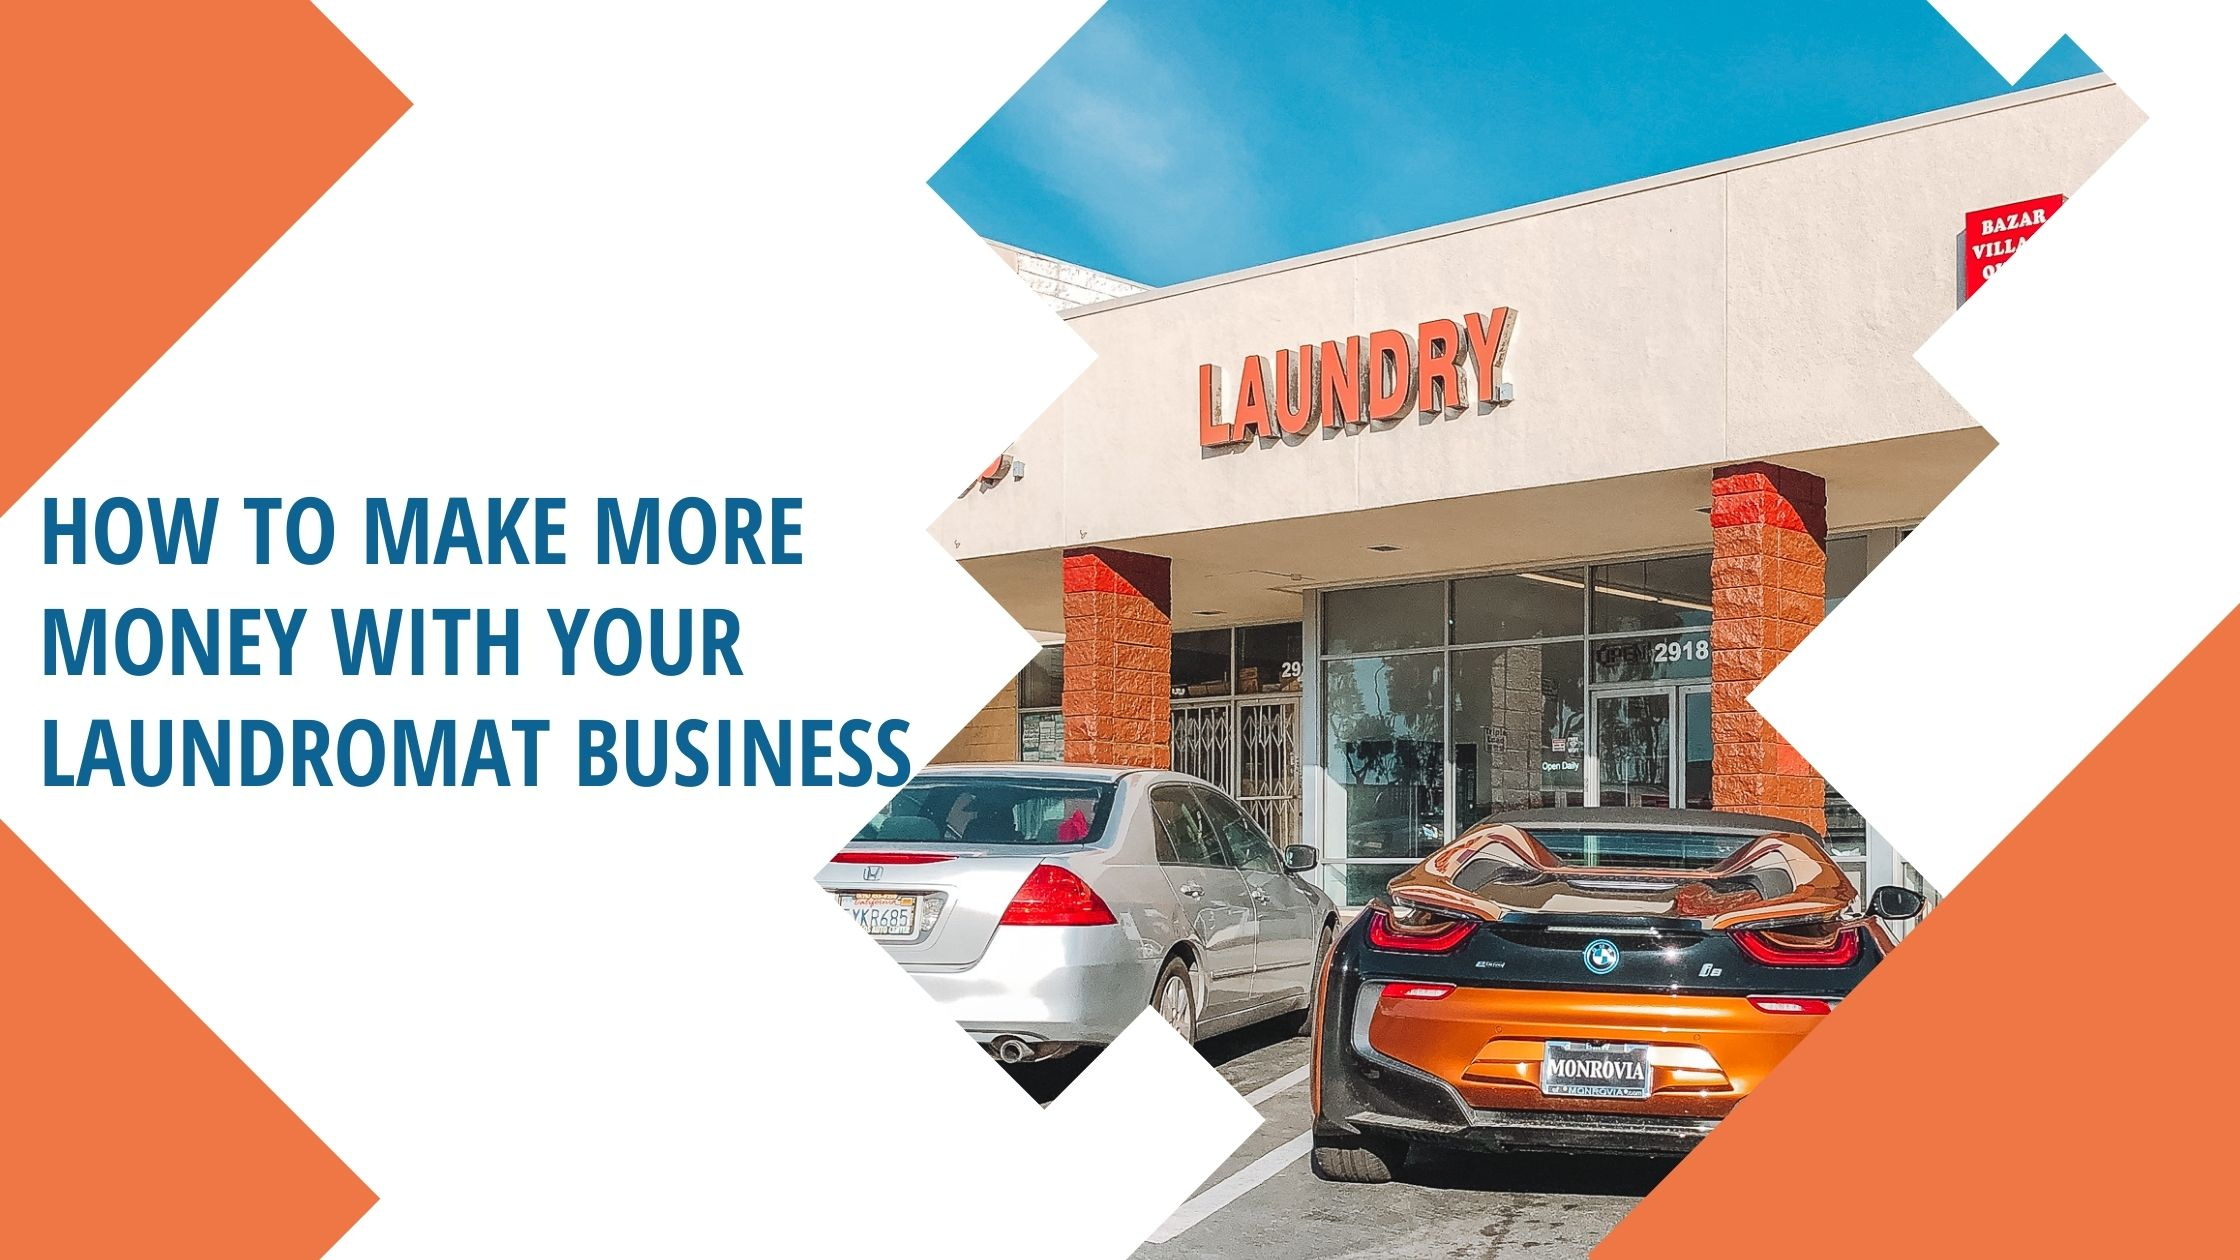 How To Make More Money With Your Laundromat